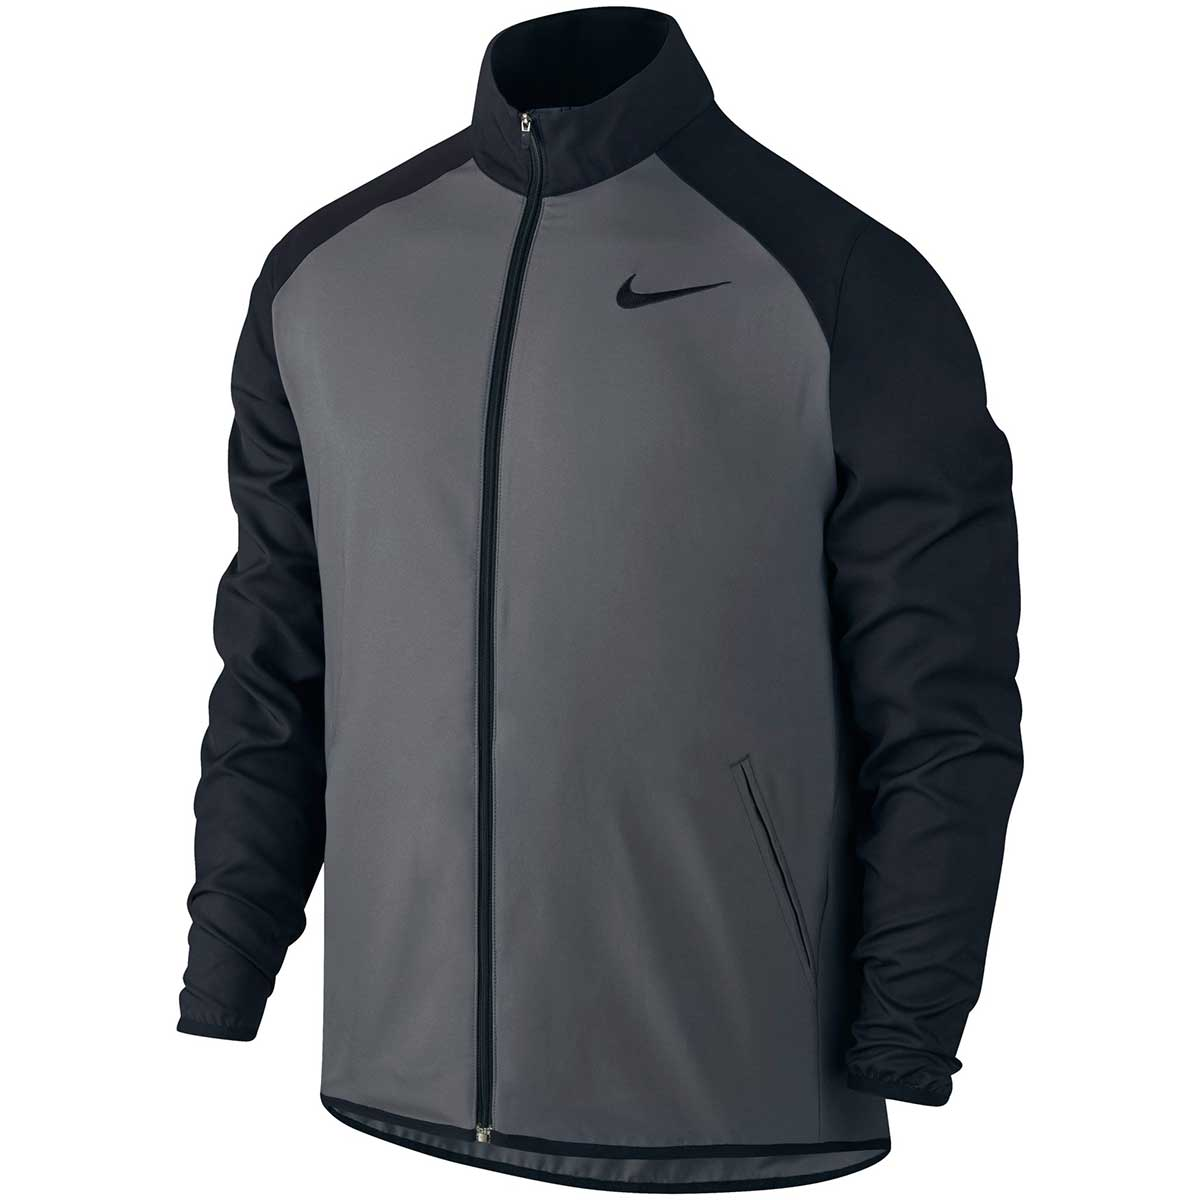 Buy Nike Mens Dry Team Training Jacket (Grey) Online India 939fbfc16